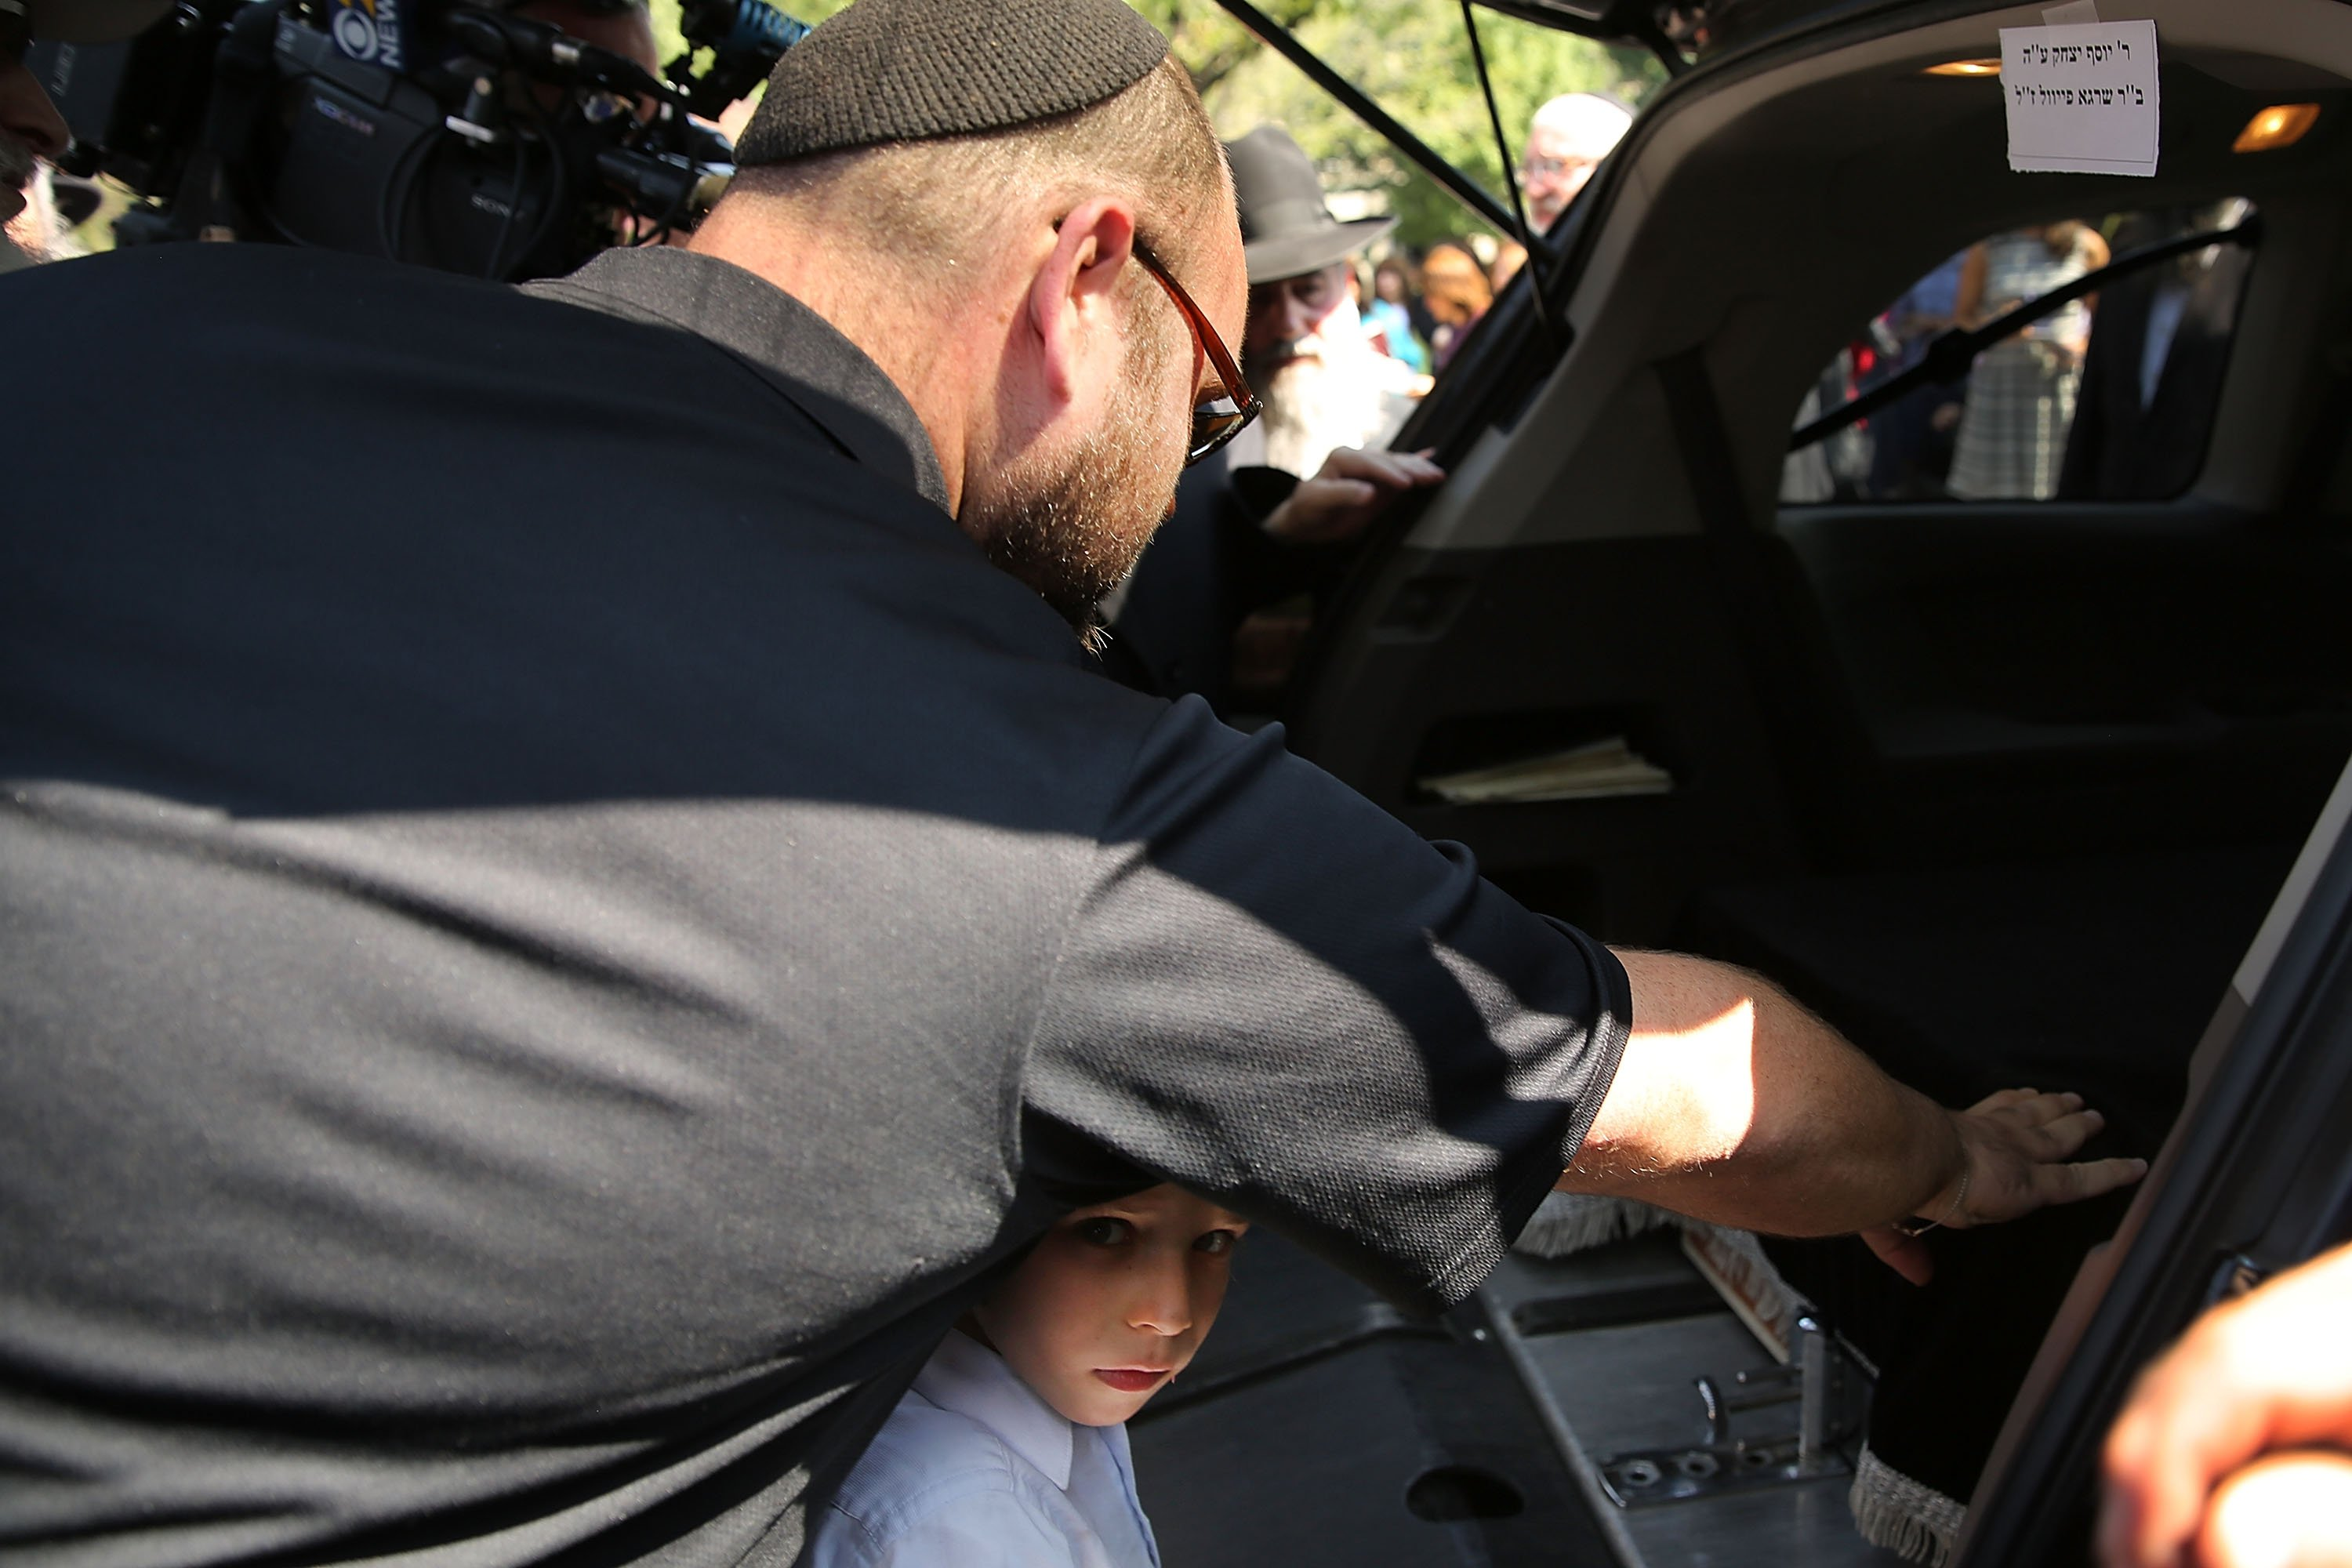 A child looks on as mourners pay their respects to the coffin in a hearse outside the Chabad-Lubavitch headquarters during the funeral of Rabbi Joseph Raksin in the Brooklyn borough of New York City on Aug. 11, 2014.